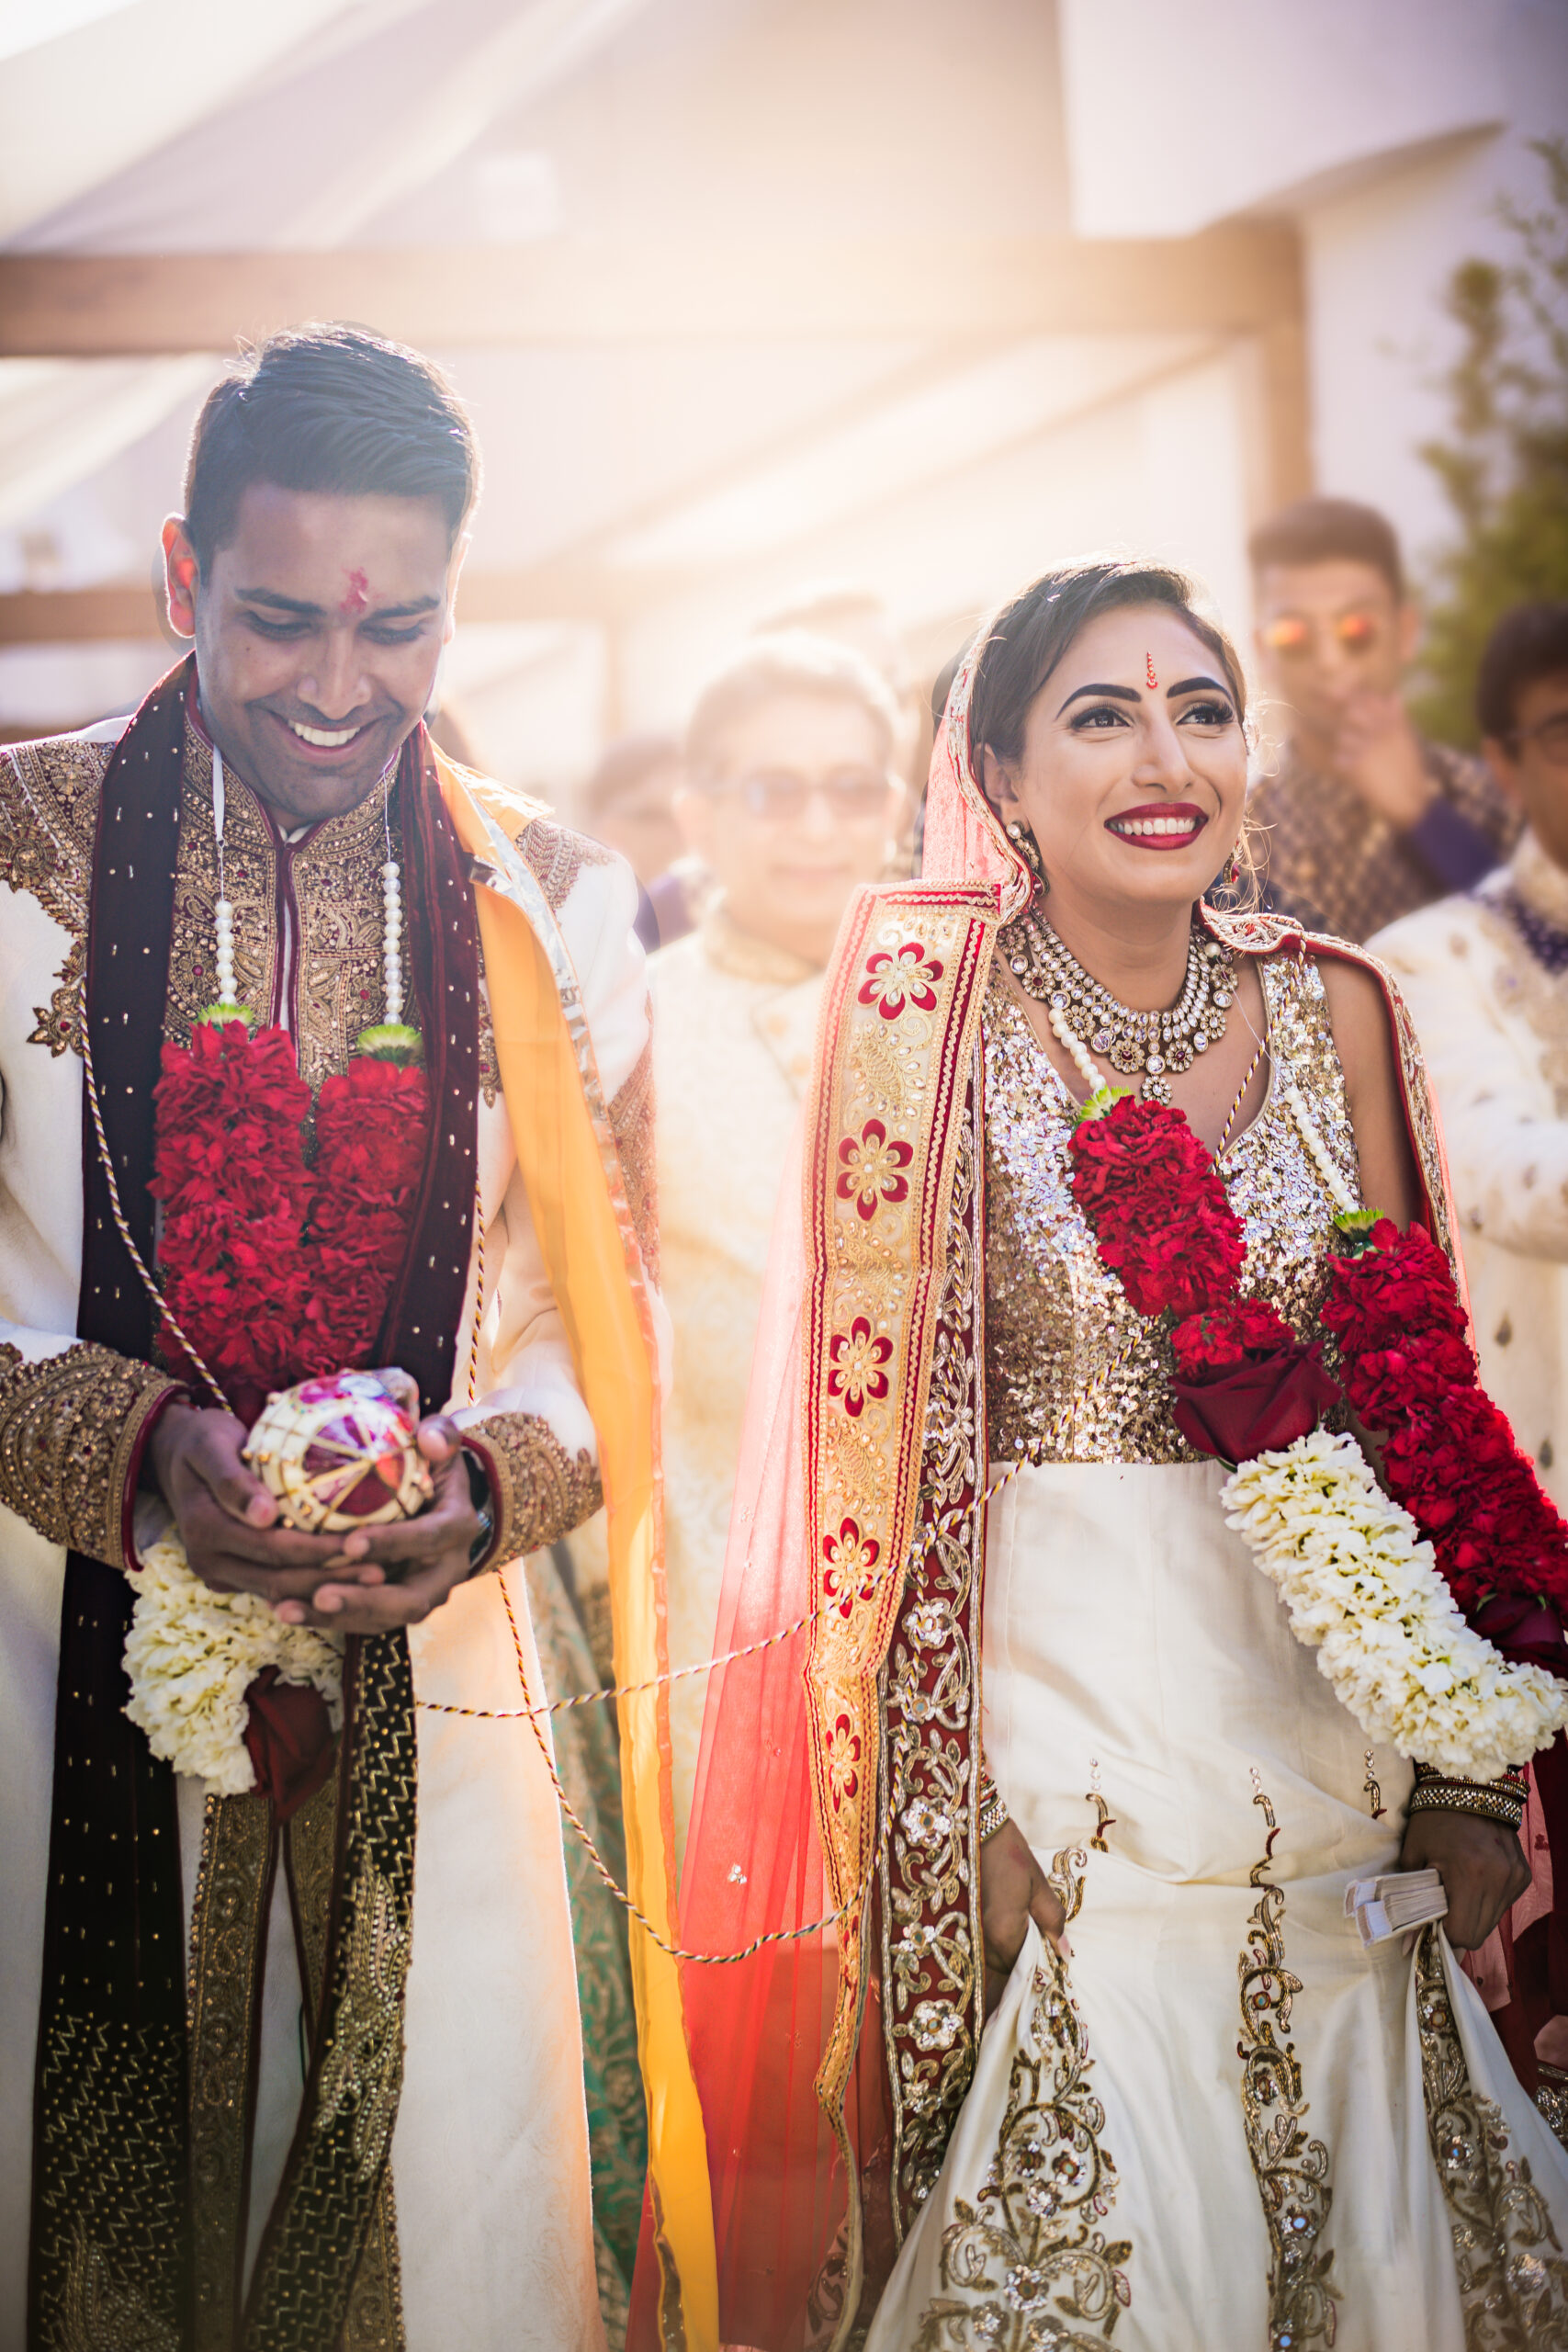 The stunning bridal couple in their traditional Indian wedding costumes - Rebecca Davidson Photography